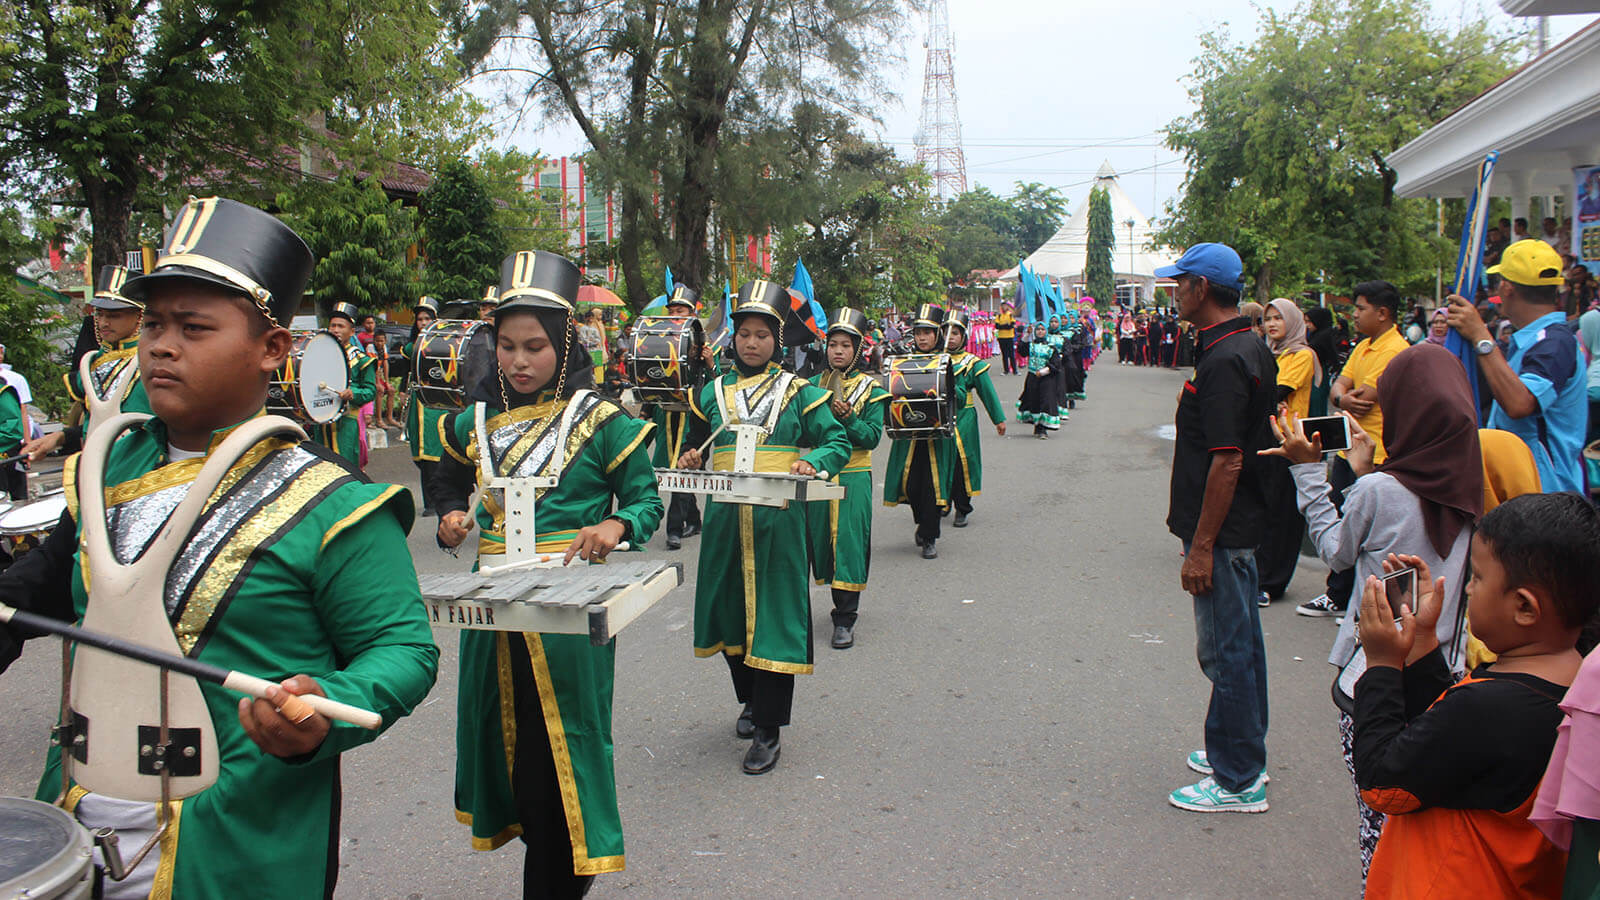 koni cup iv 2019 - drum band